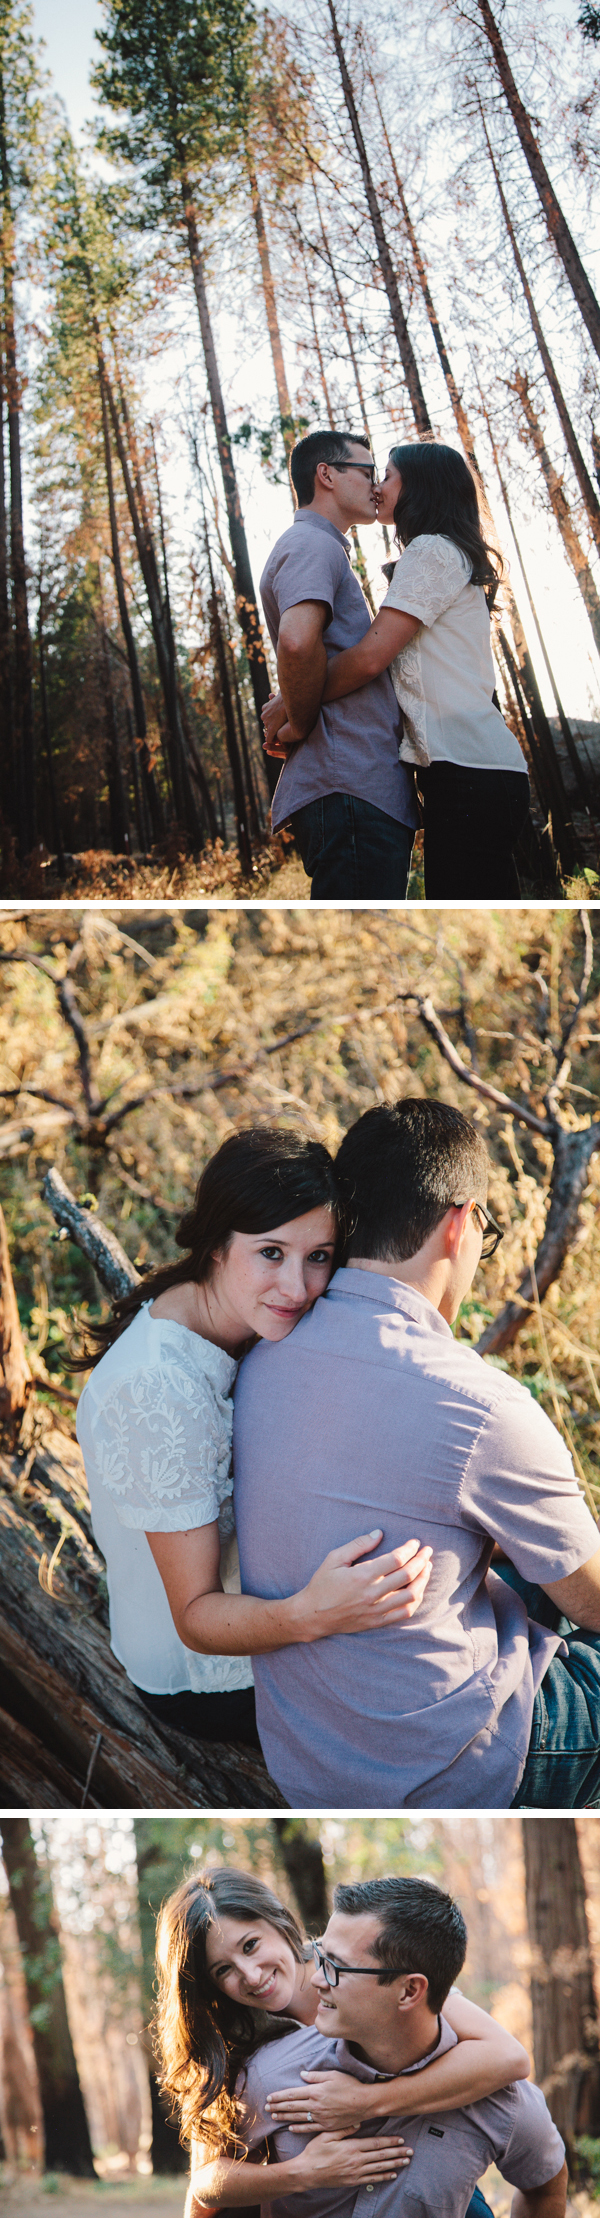 Engagement photography in the woods • Yosemite, California